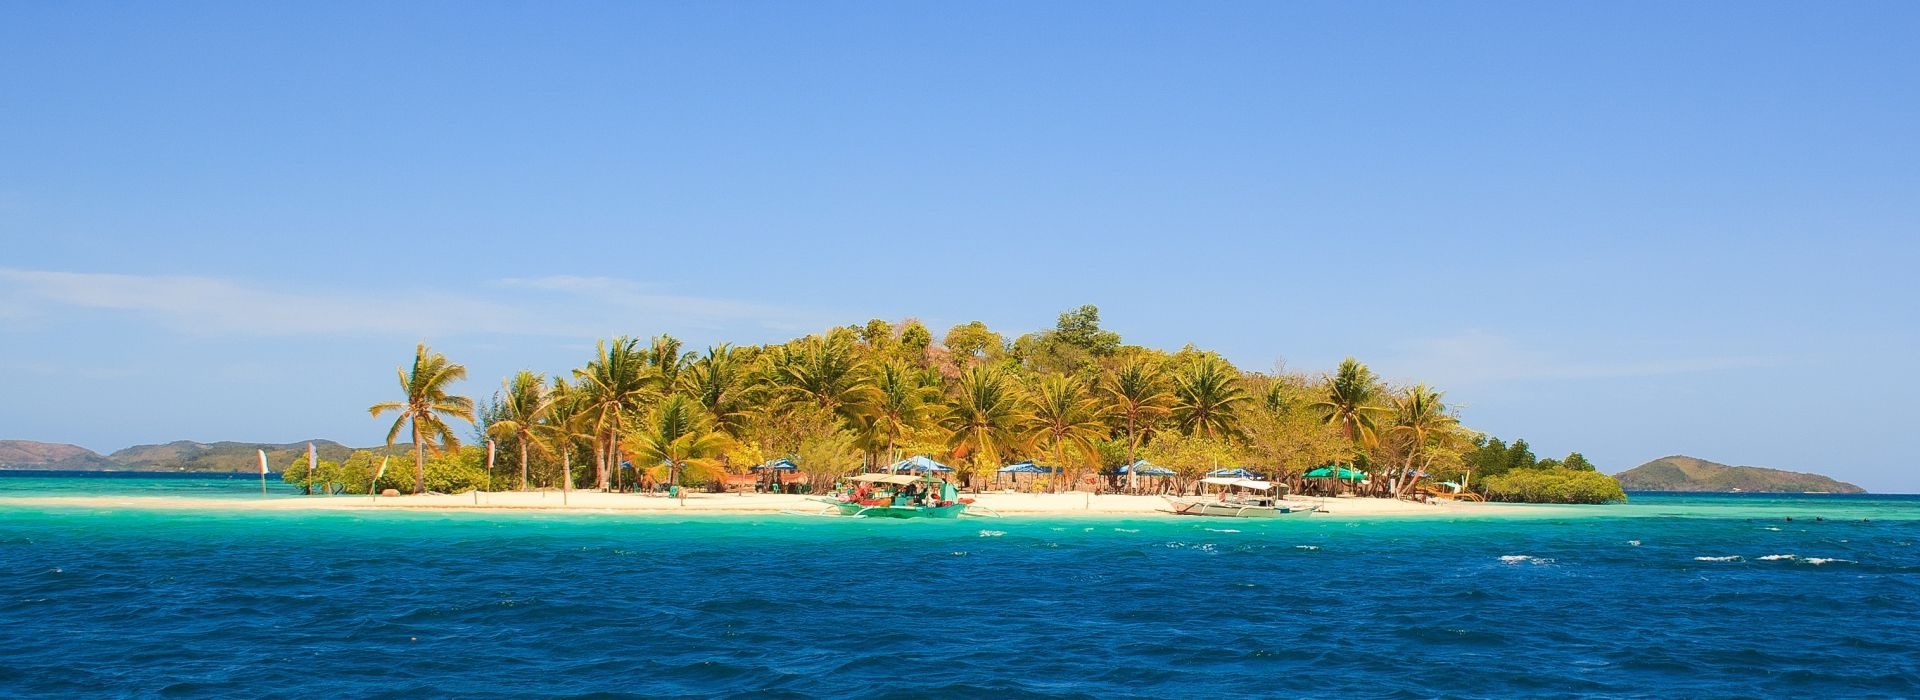 Beach, romance, getaways and relaxation Tours in Philippines